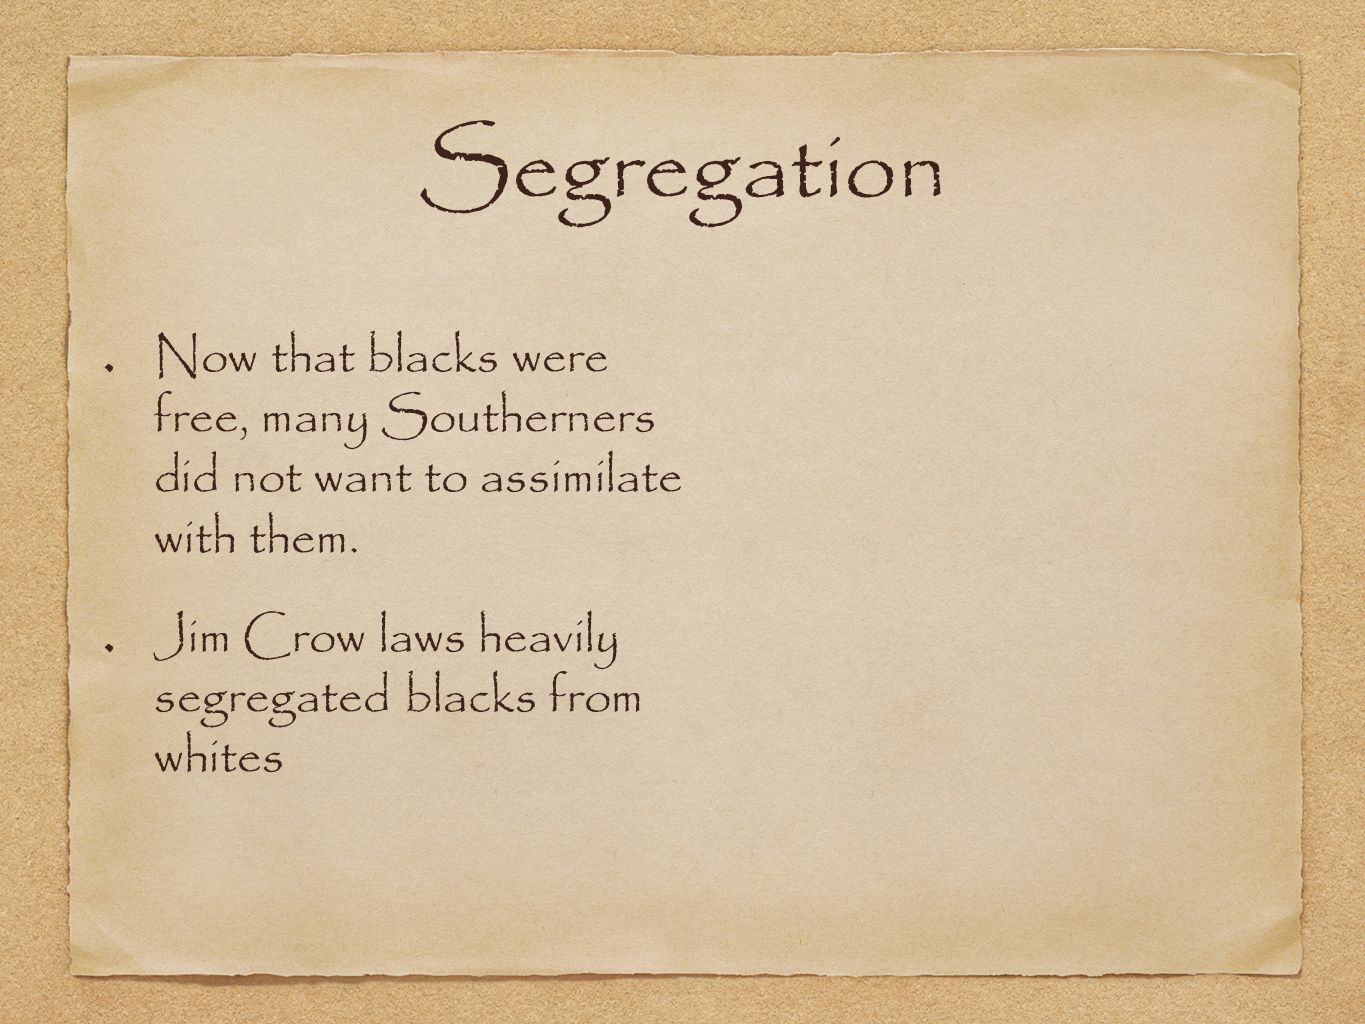 Segregation Now that blacks were free, many Southerners did not want to assimilate with them.